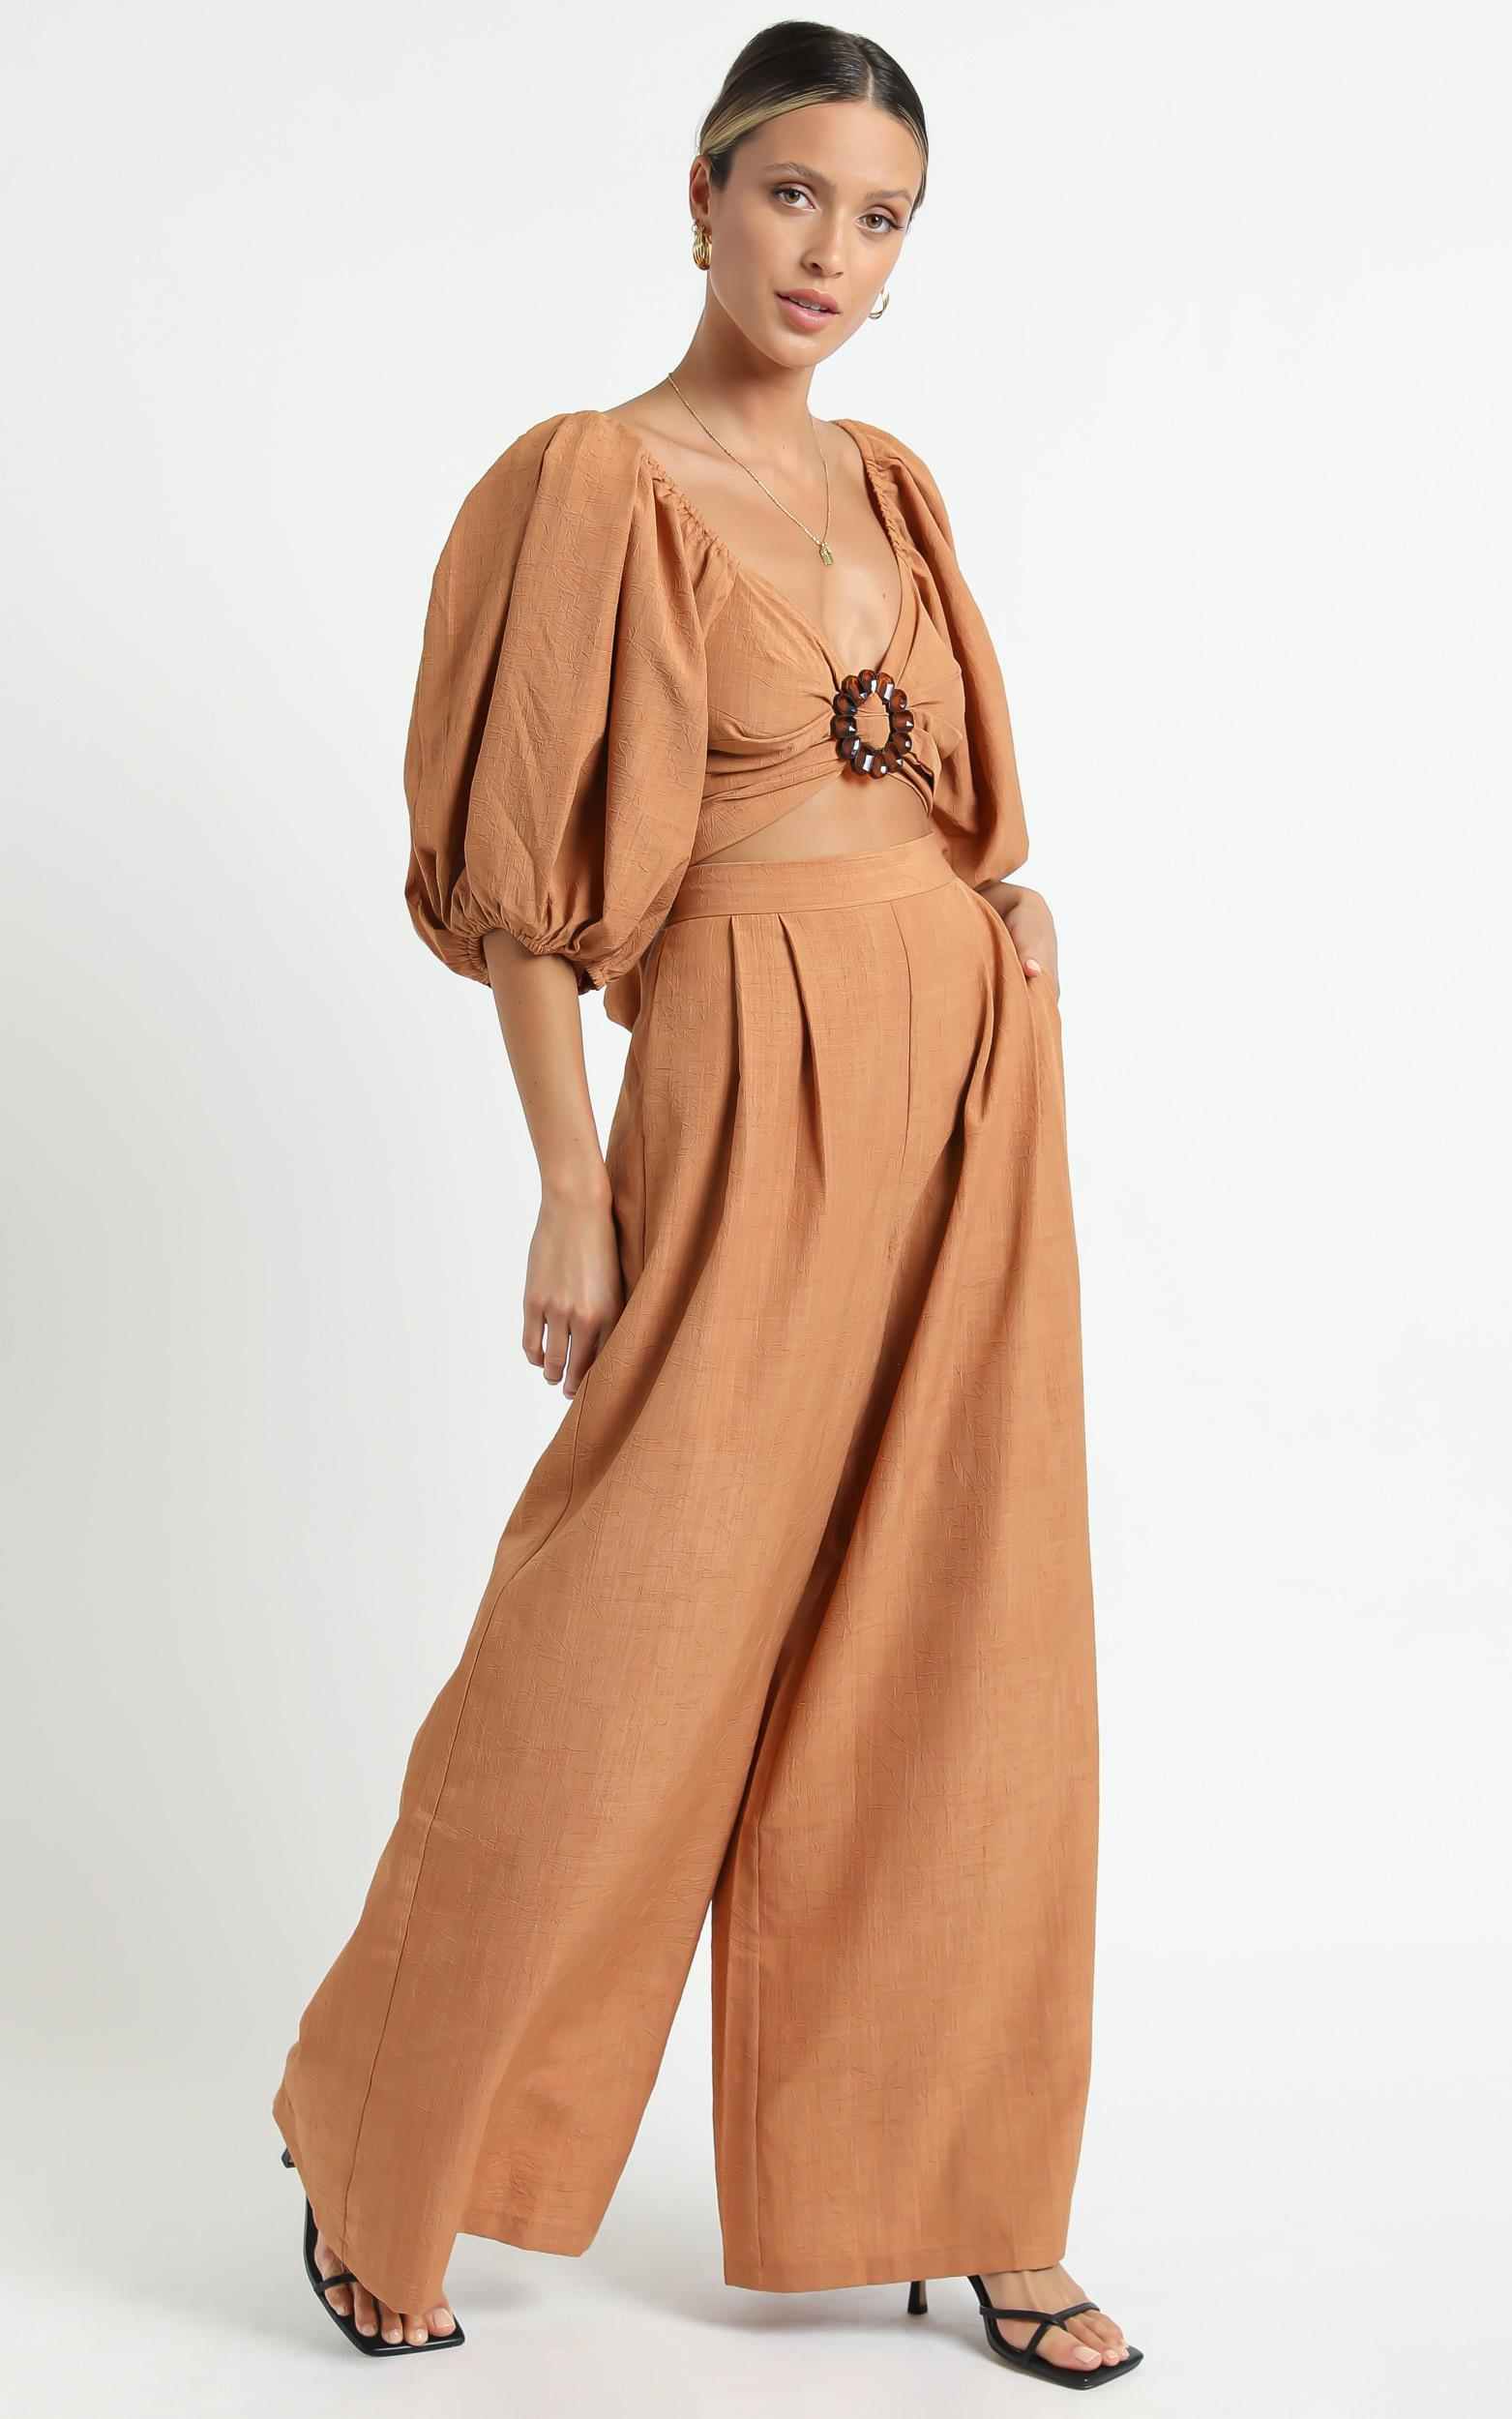 Minkpink - Shaila Wrap Top in Rust - XS, Rust, hi-res image number null